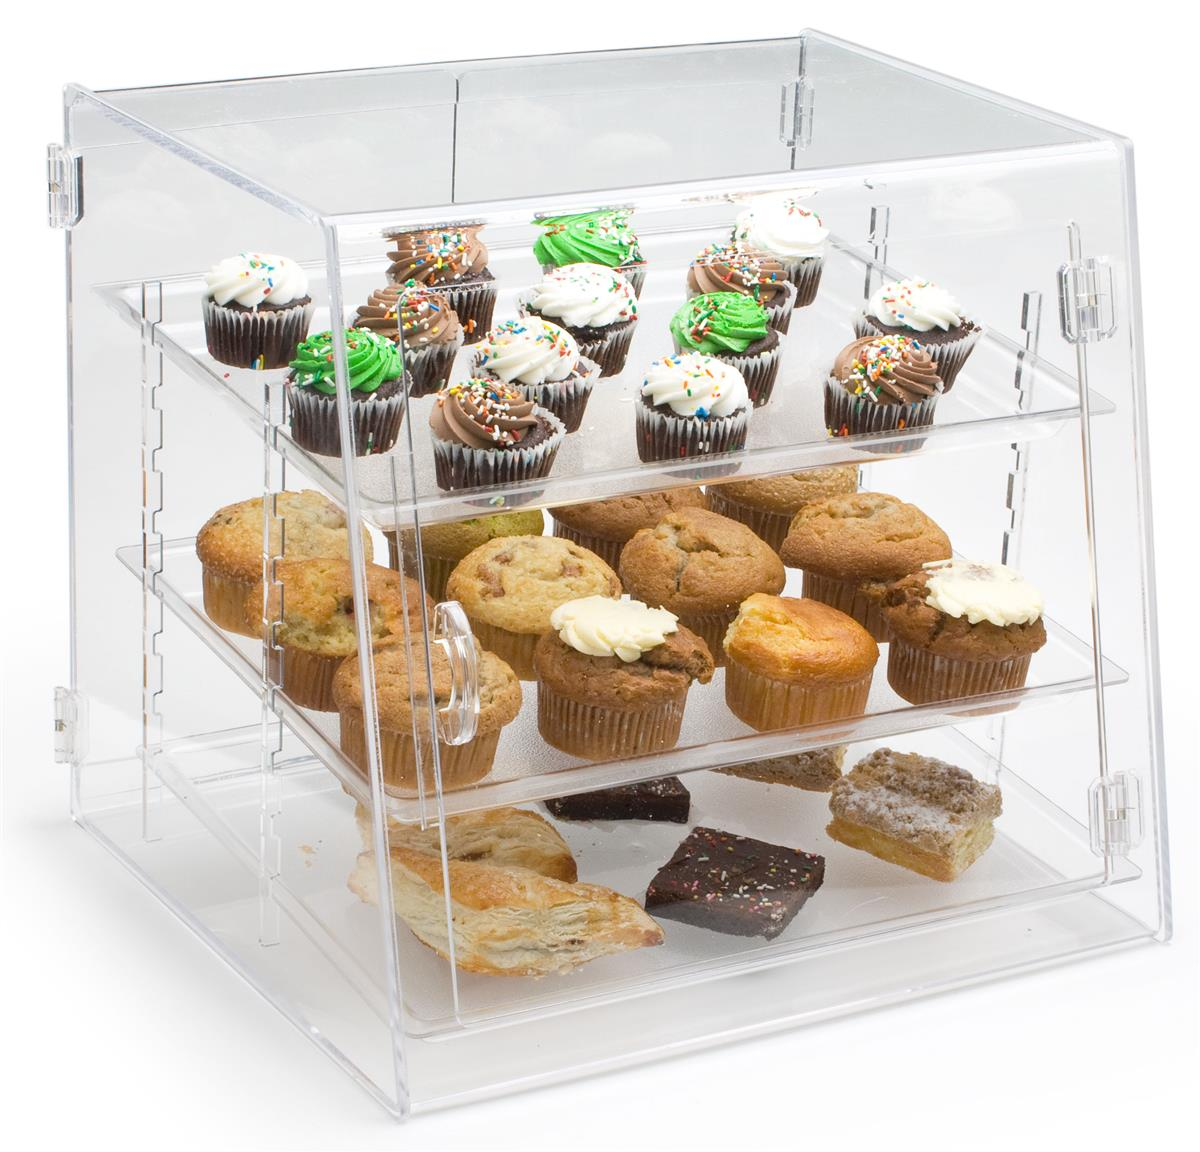 Muffins, Brownies & Donuts Presentation Stand